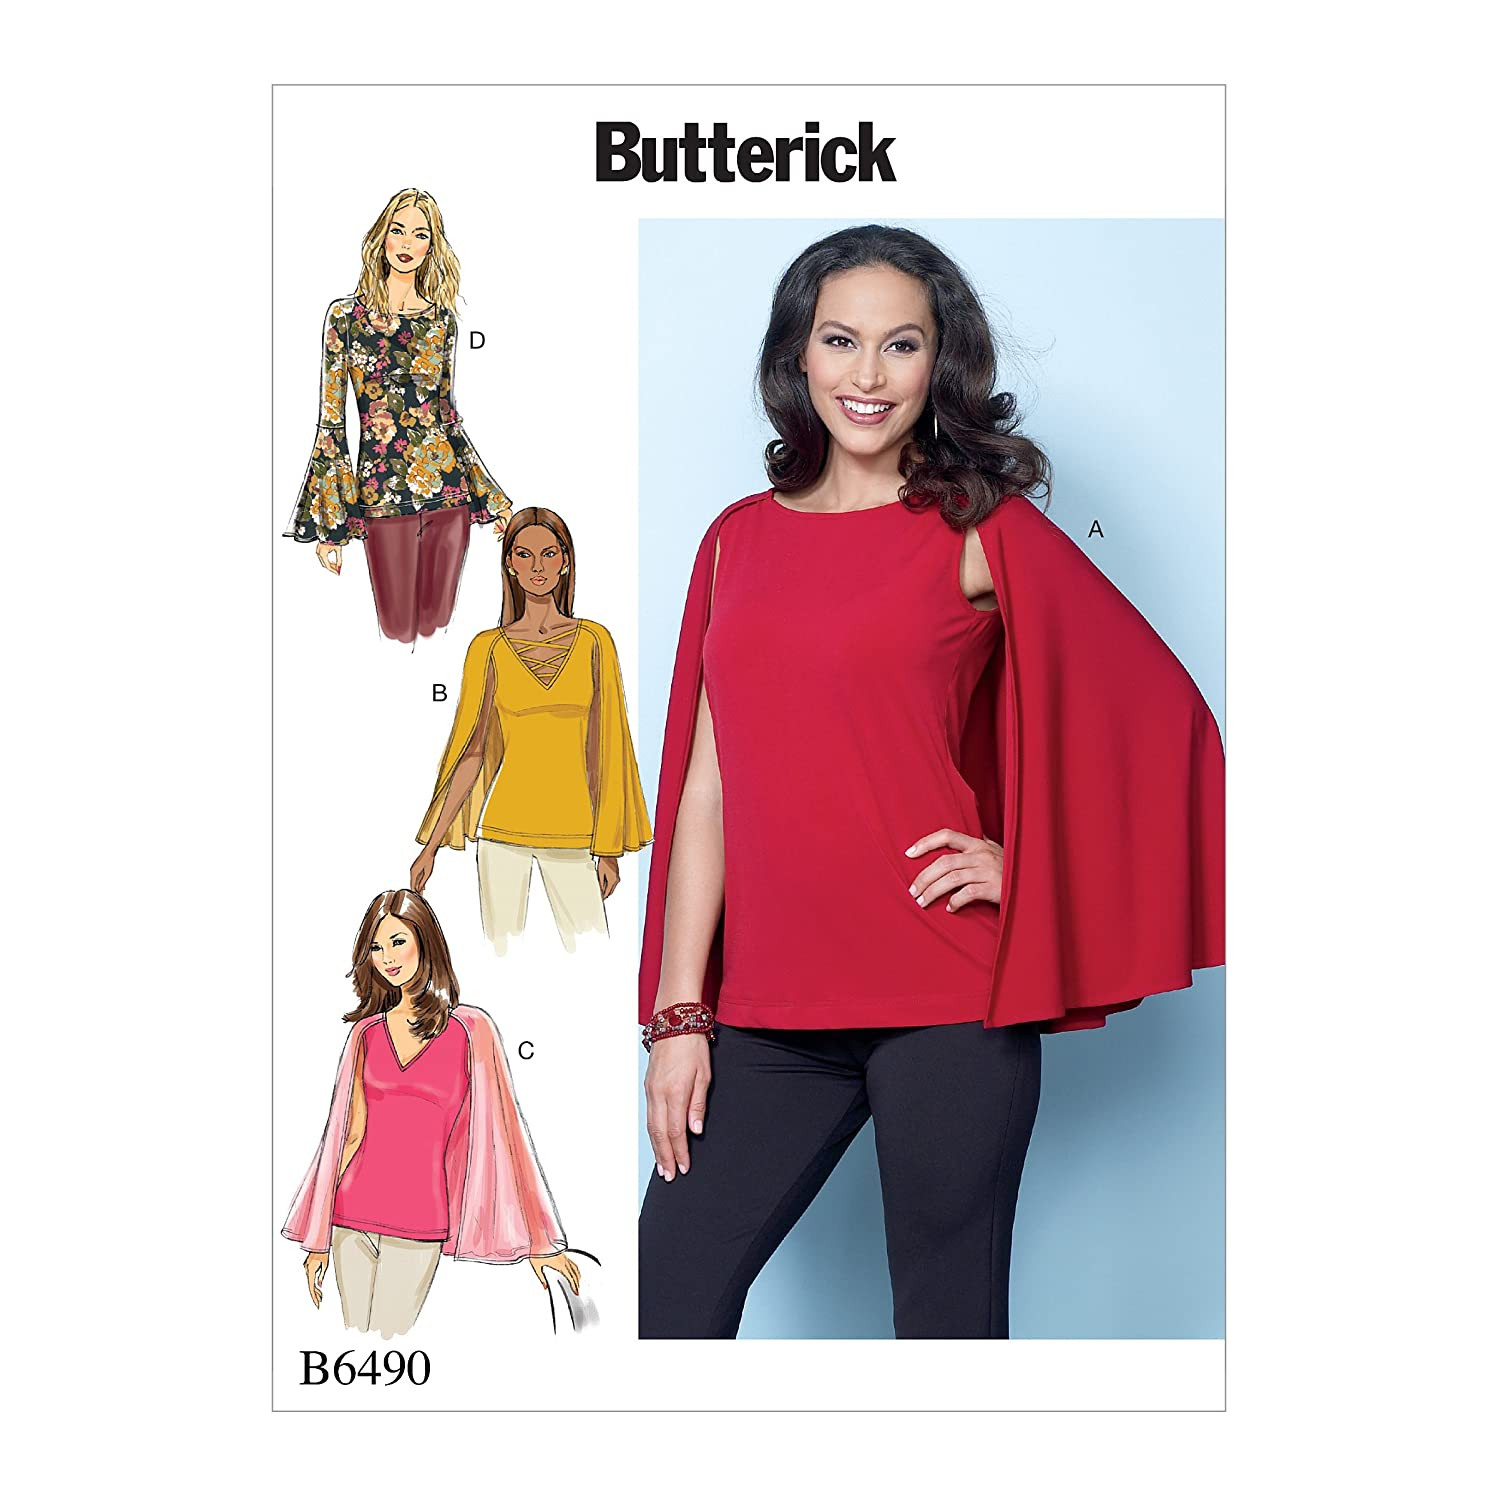 Butterick Patterns B6490E50 Misses' Tops with Attached Cape and Sleeve Variations, E5 (14-16-18-20-22)